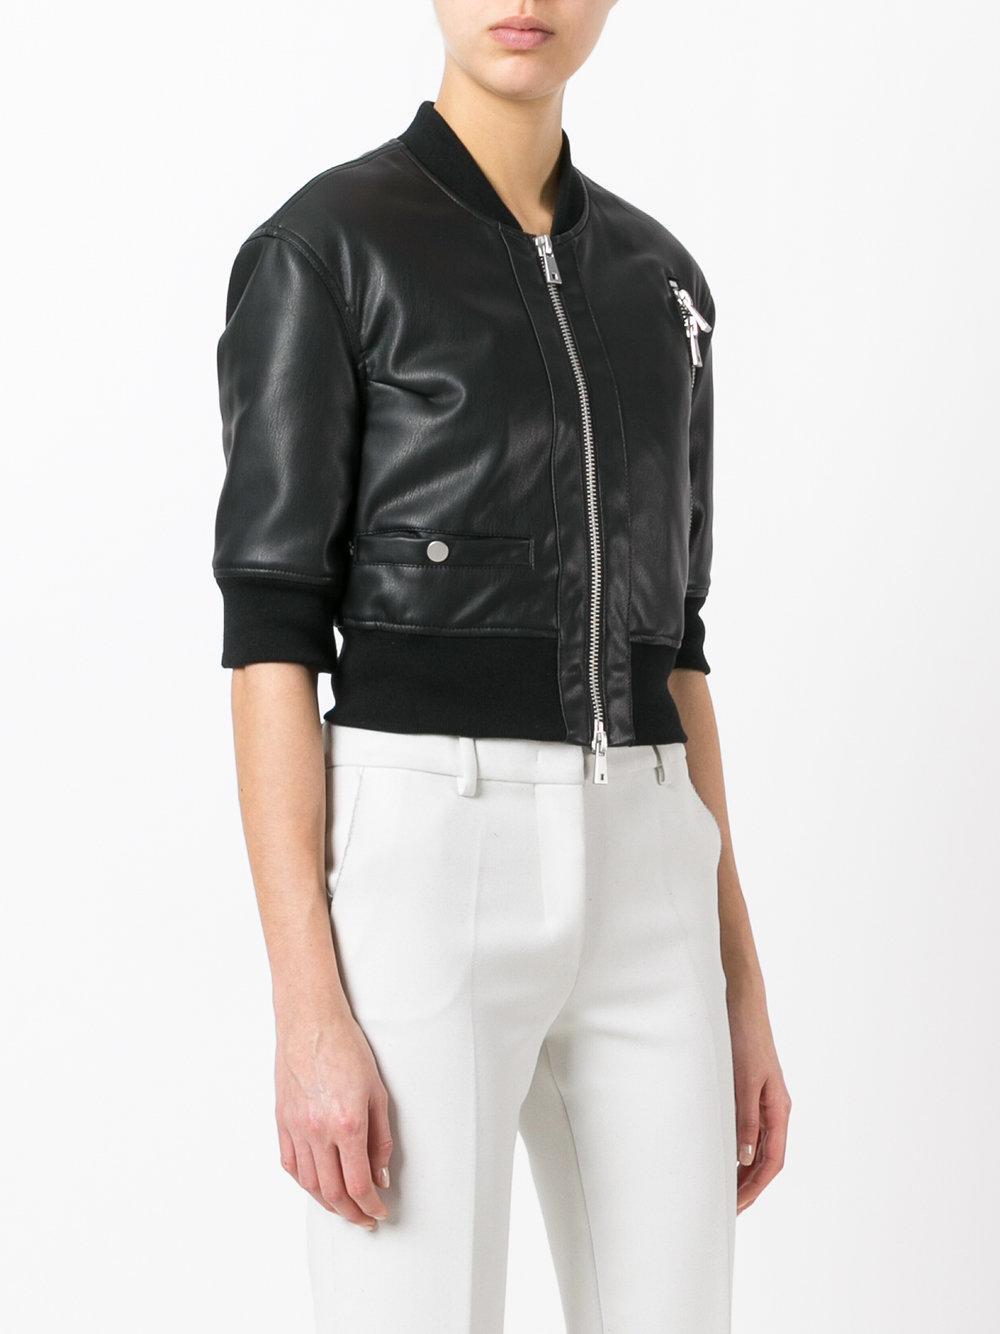 Find the latest and trendy styles of bomber jacket - Women's Black, Army Green, Leather and Embroidered Bomber Jackets at ZAFUL. We are pleased you with the latest trends in high fashion bomber jacket. Fast shipping and unconditional refund.